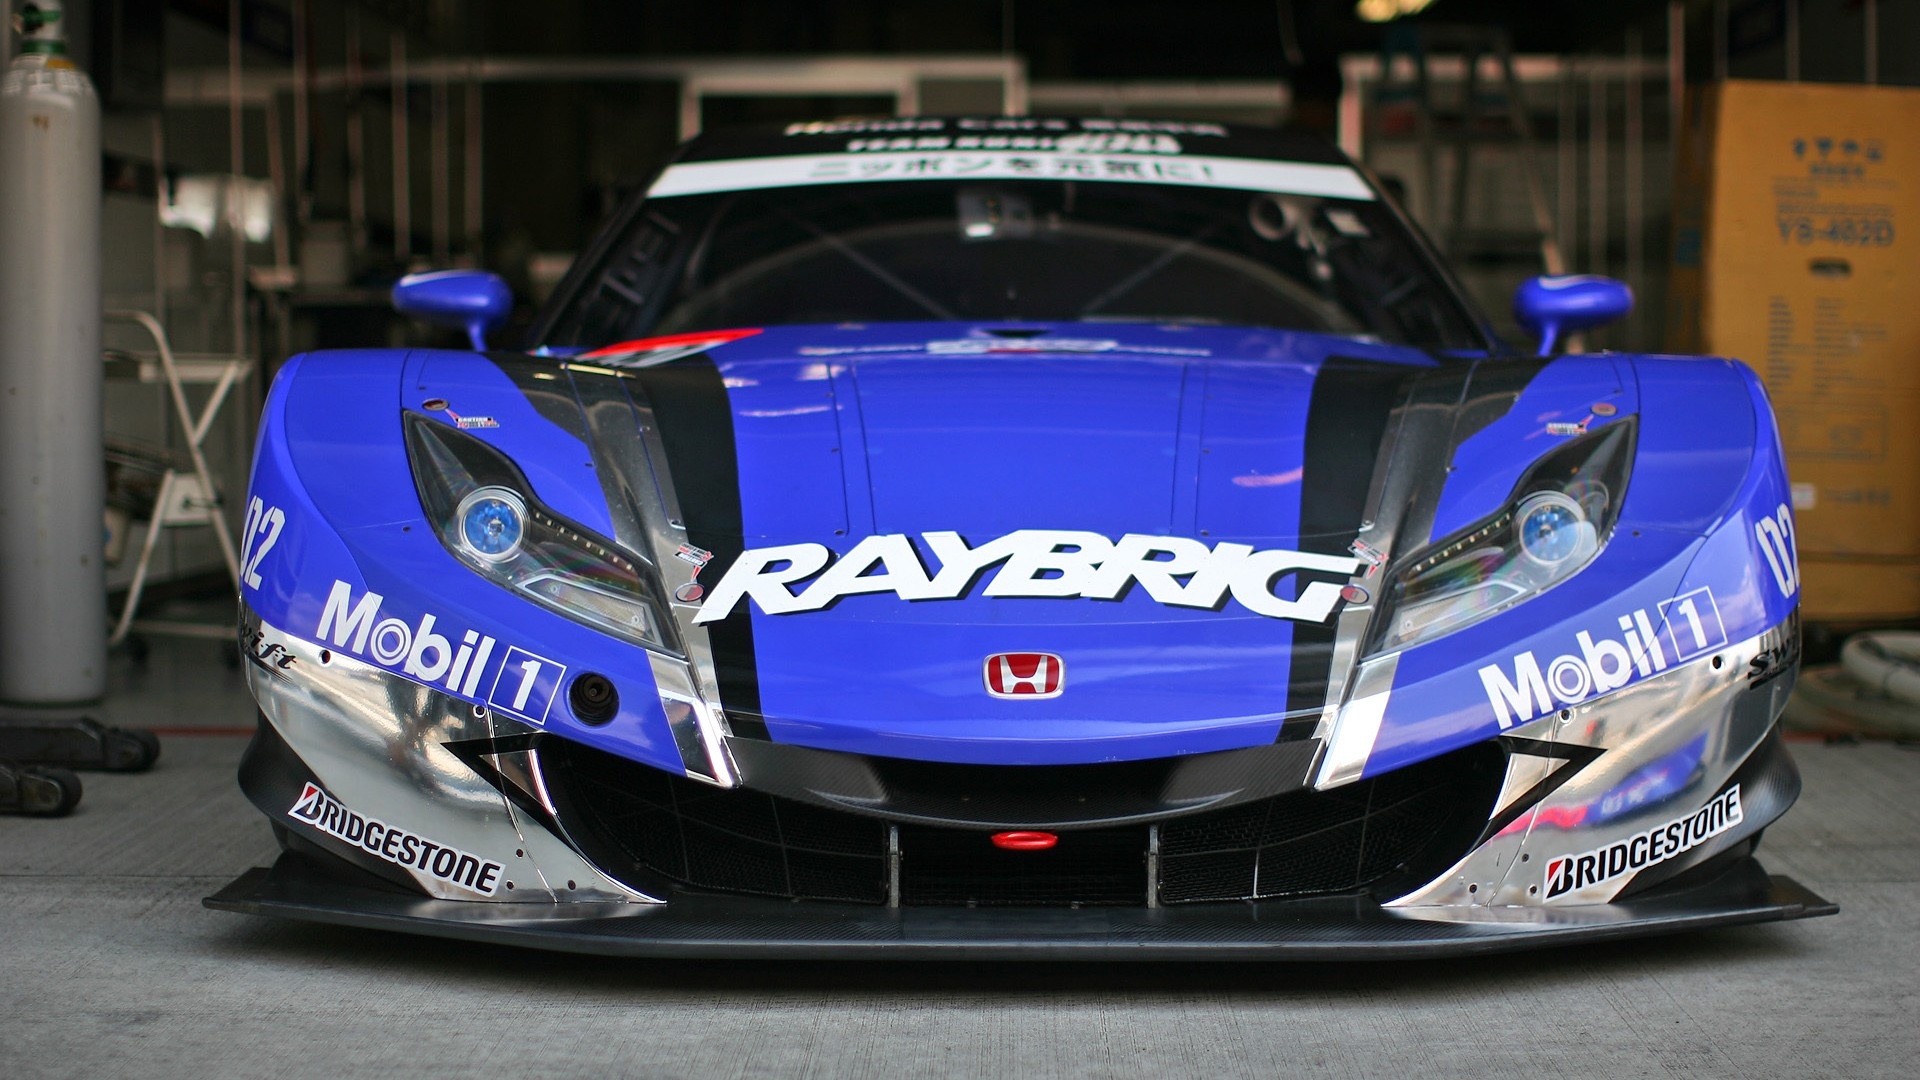 Download Hd Wallpapers Of Audi Cars Raybrig Hsv Super Gt Wallpaper Hd Car Wallpapers Id 3108